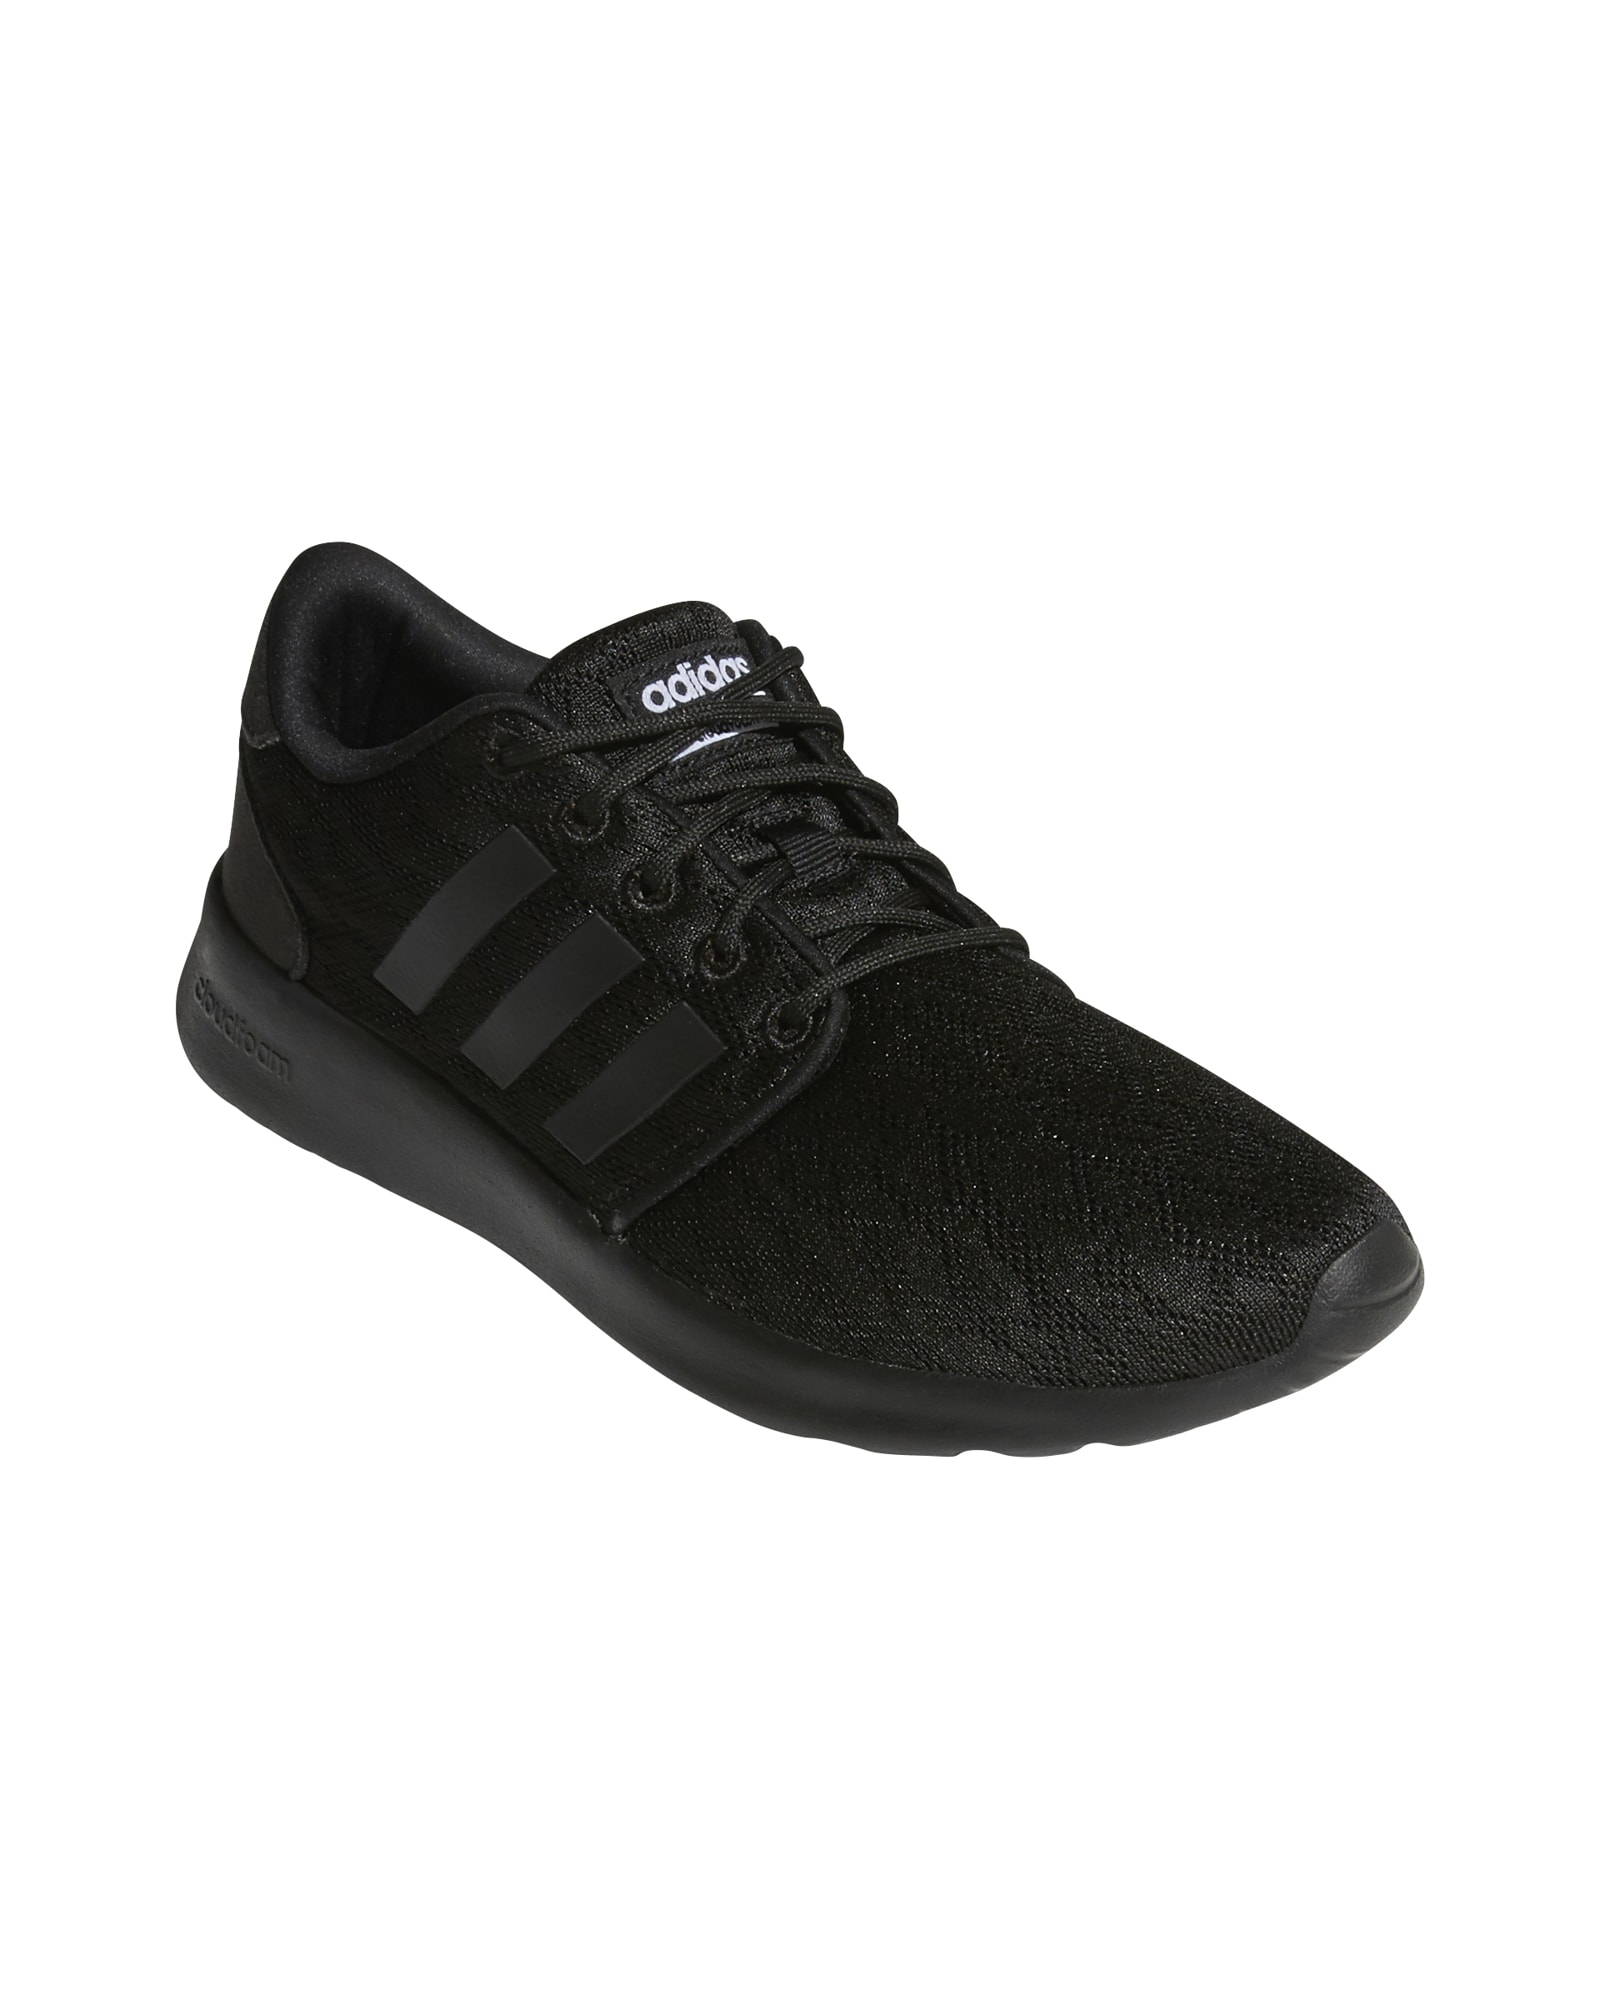 adidas Cloudfoam QT Racer Black buy and offers on Traininn